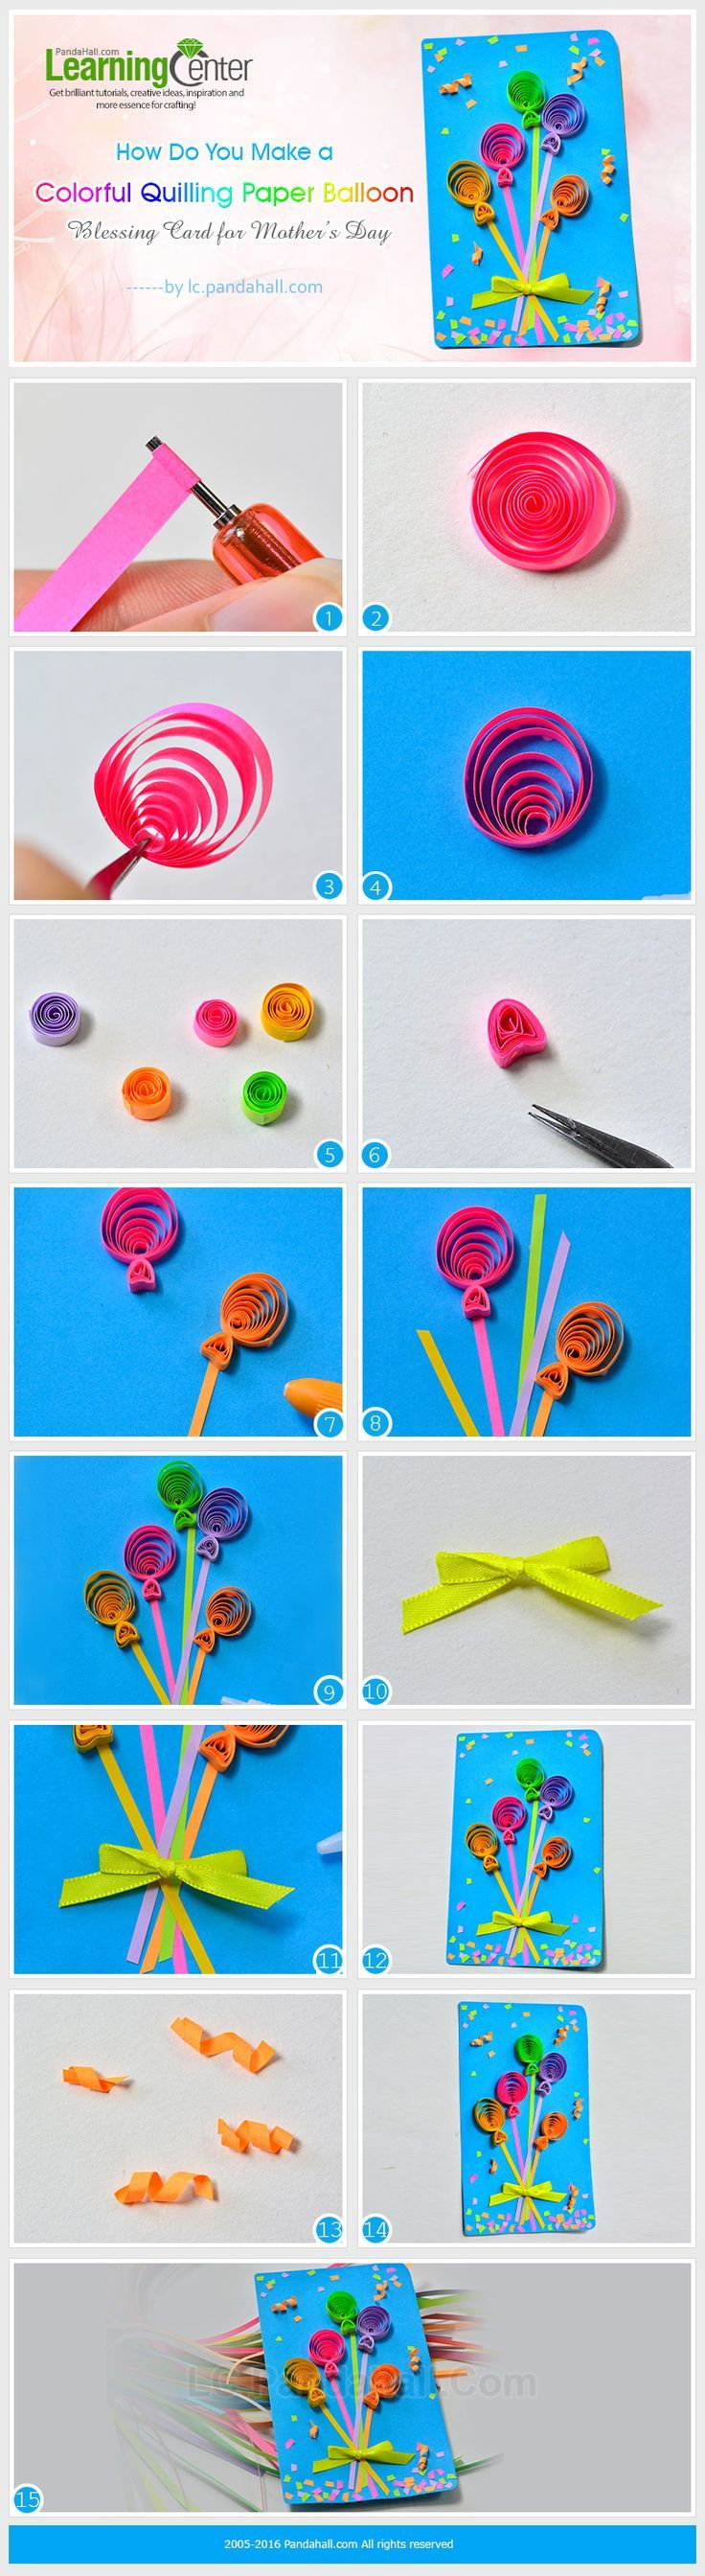 How Do You Make a Colorful Quilling Paper Balloon Blessing Card for Mother's Day from LC.Pandahall.com